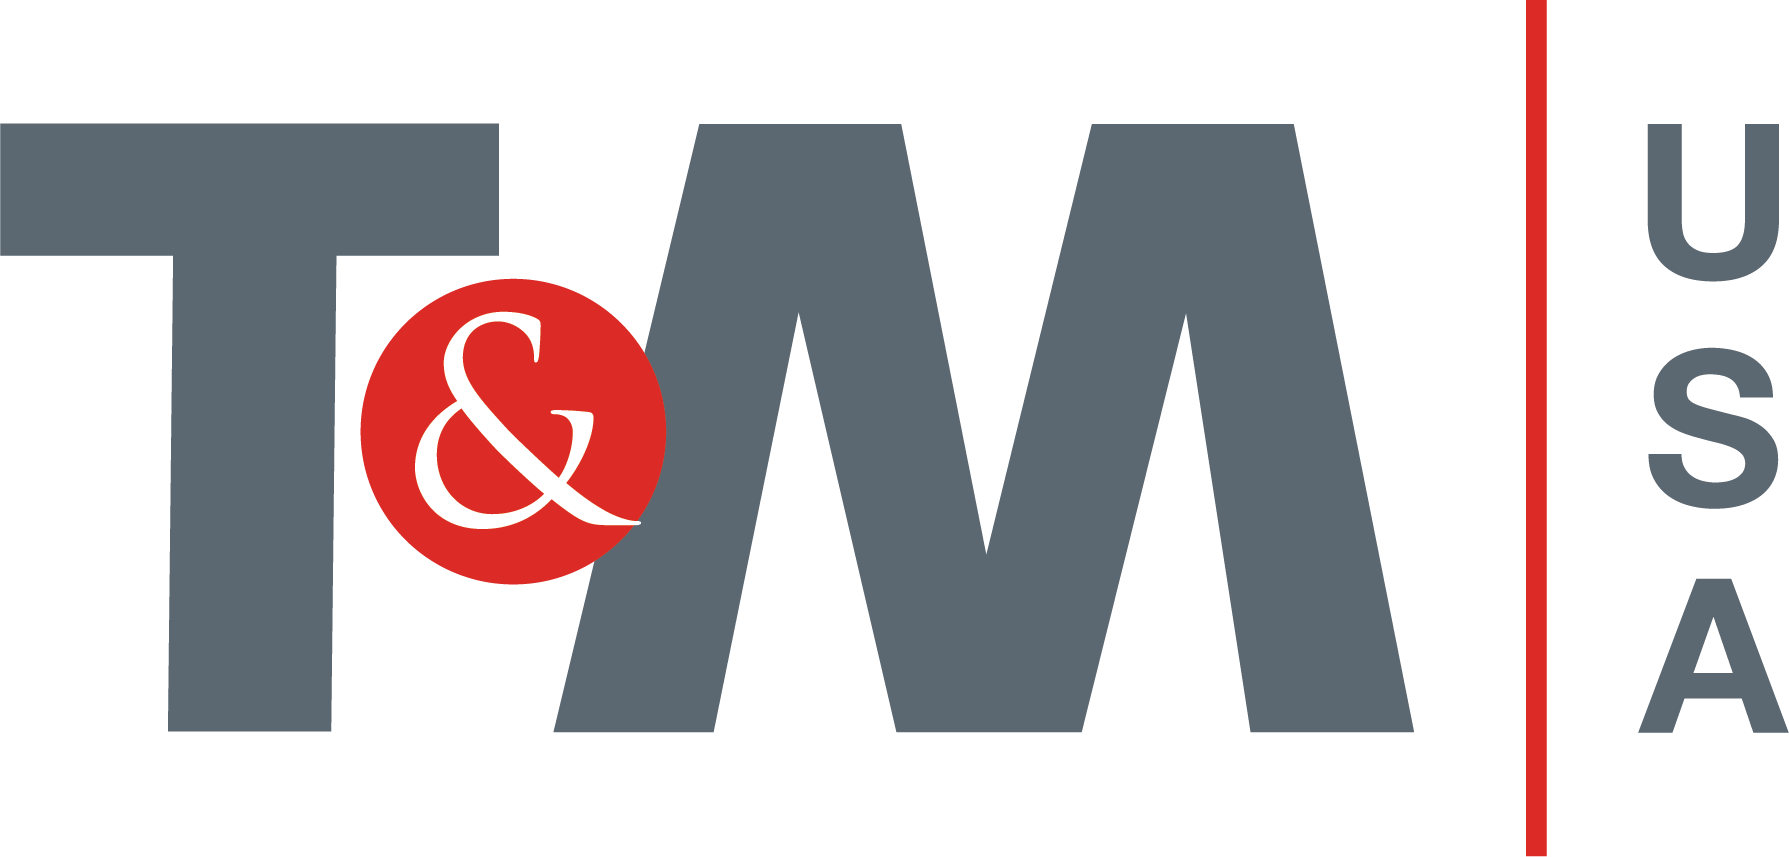 t_and_m_protection_logo.jpg